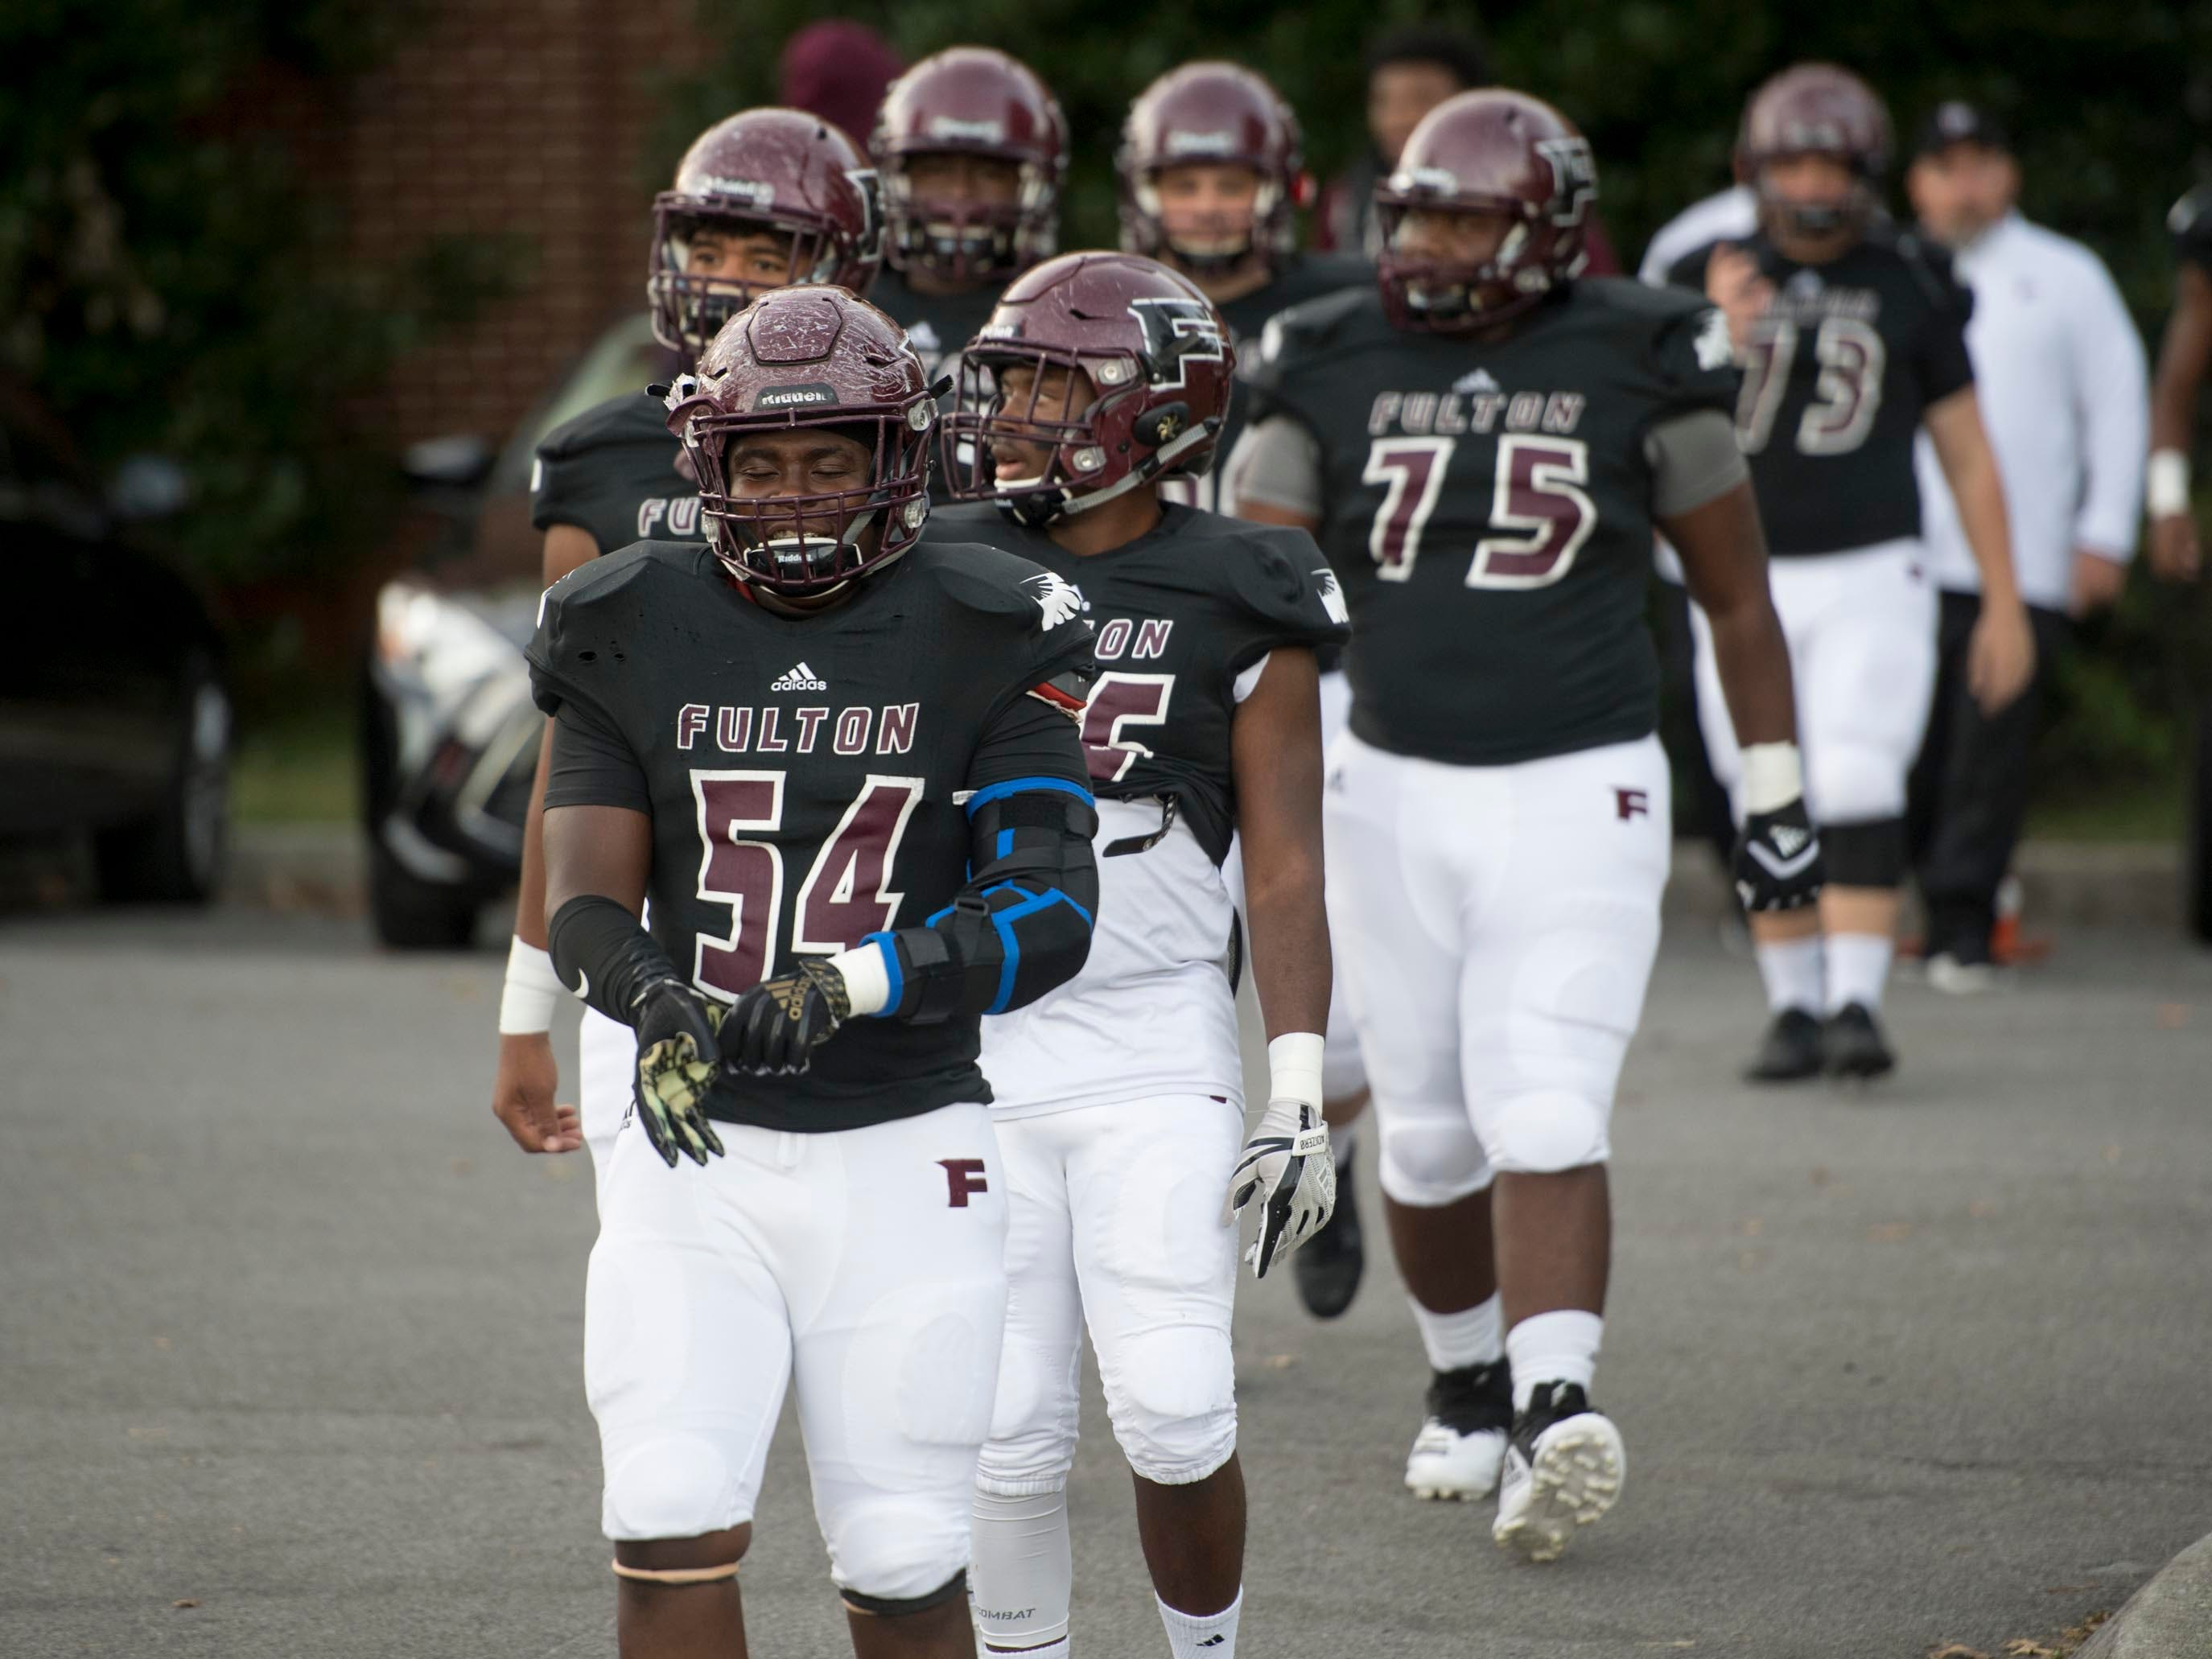 Fulton linemen approach the field for the football game against Campbell County on Friday, October 12, 2018